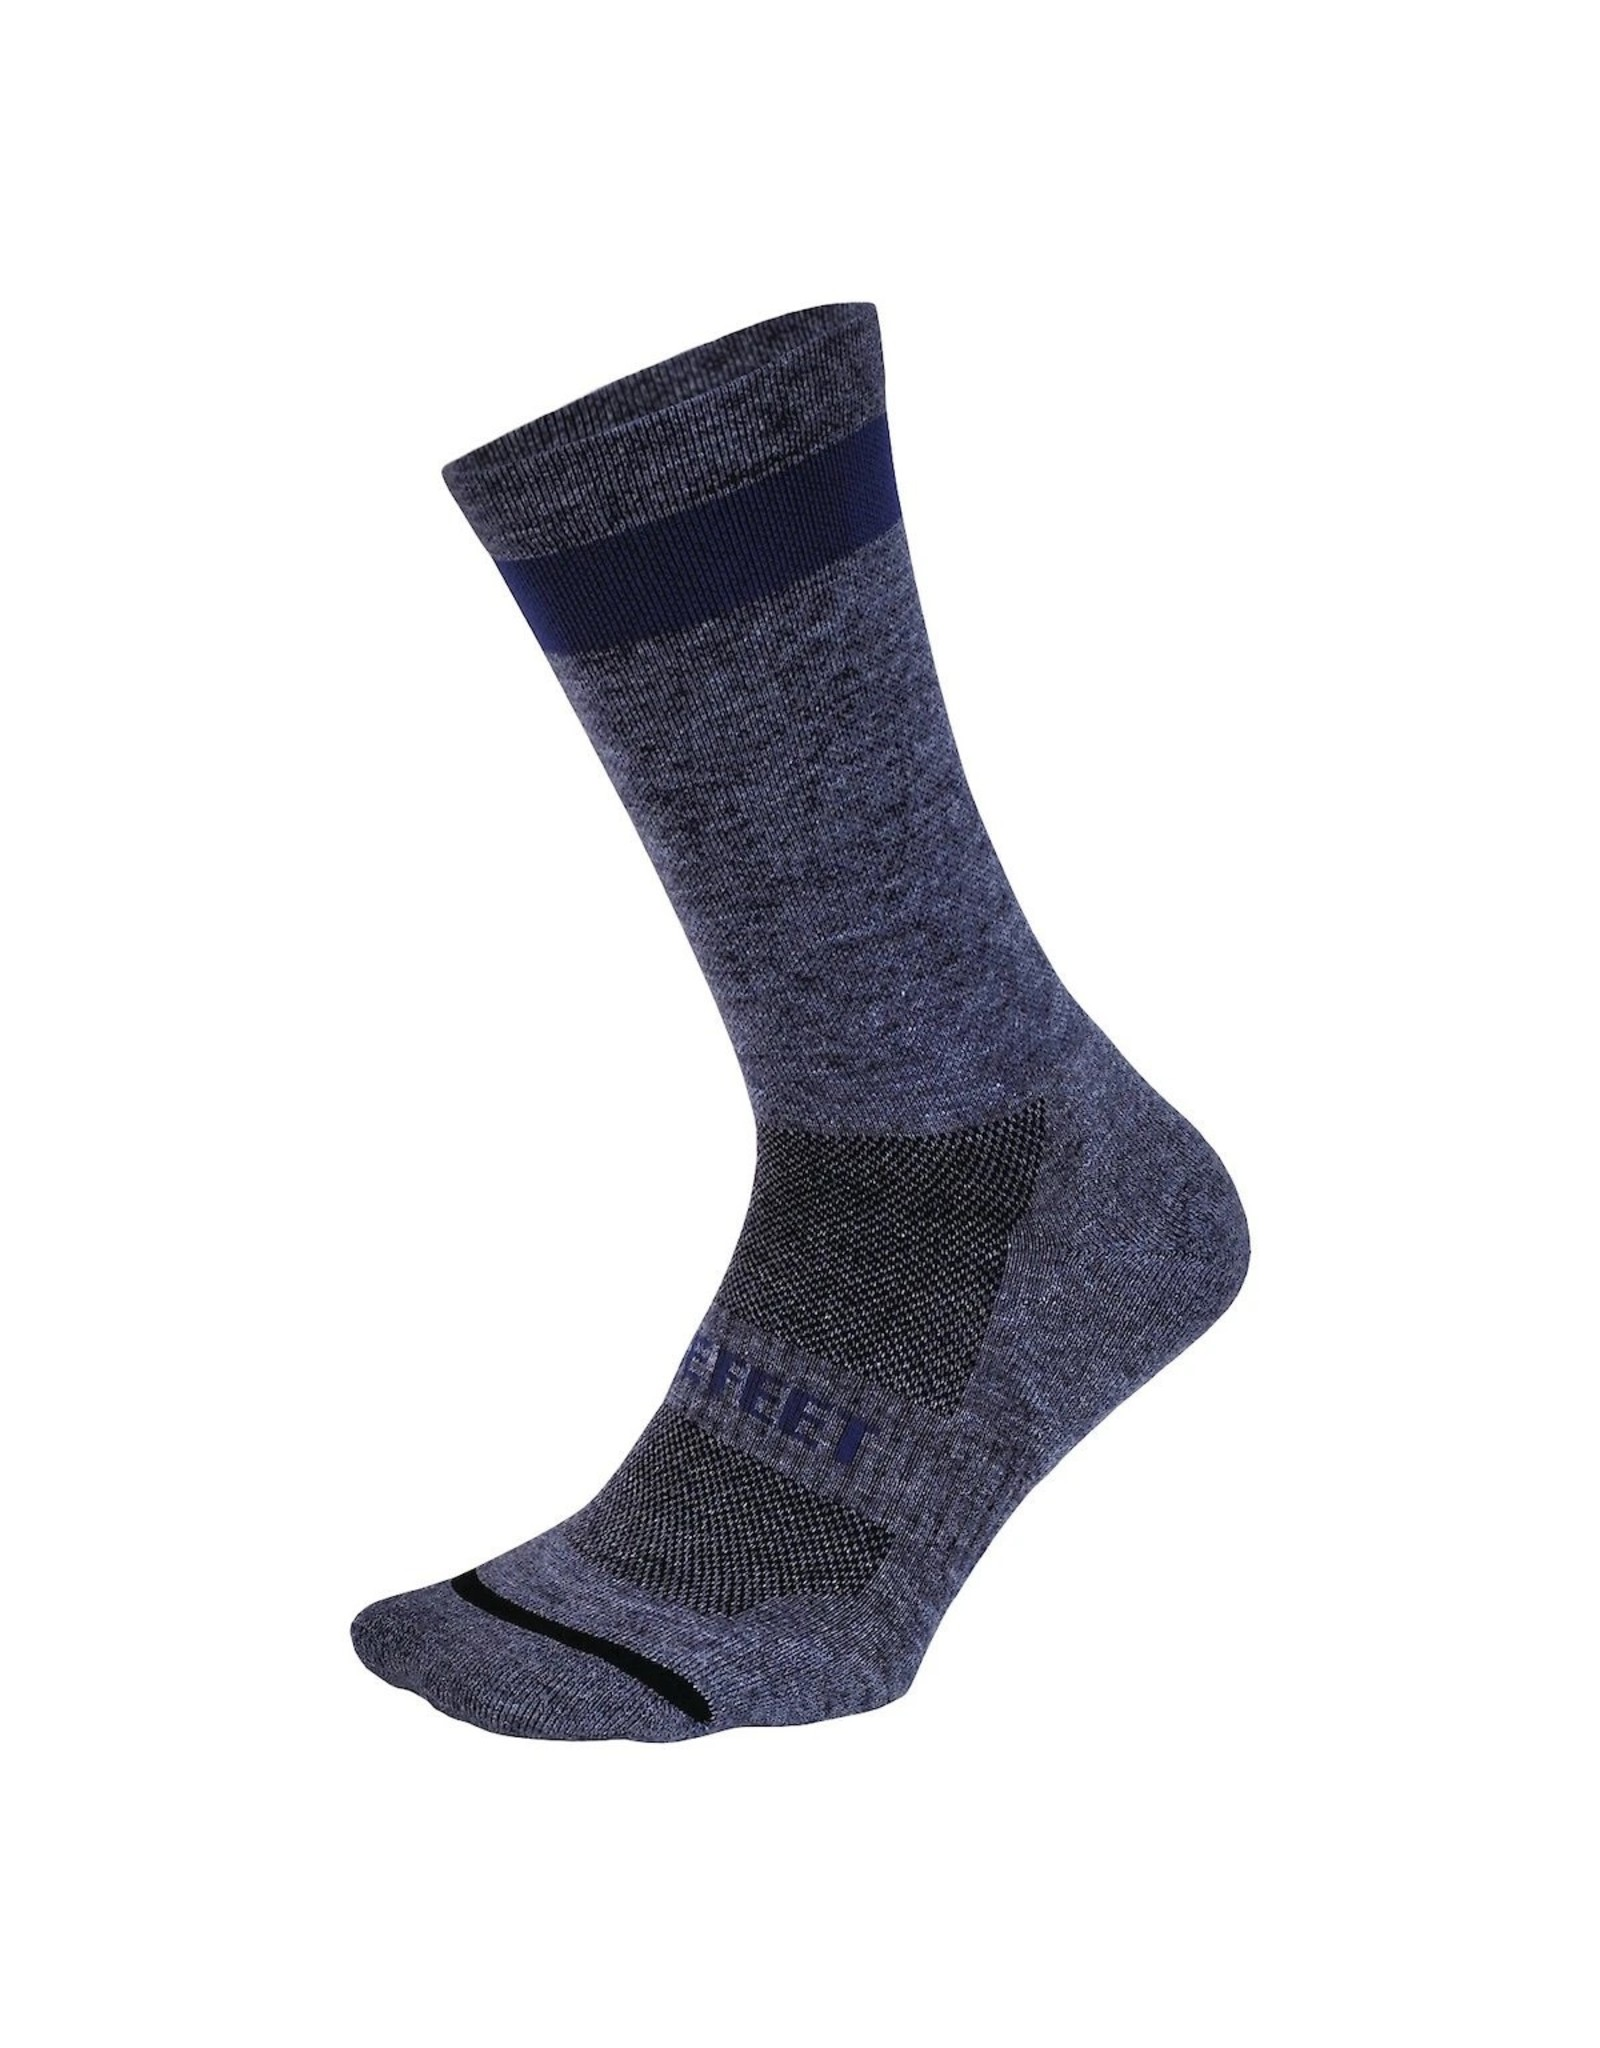 Defeet Defeet Cush Wool Comp 7""